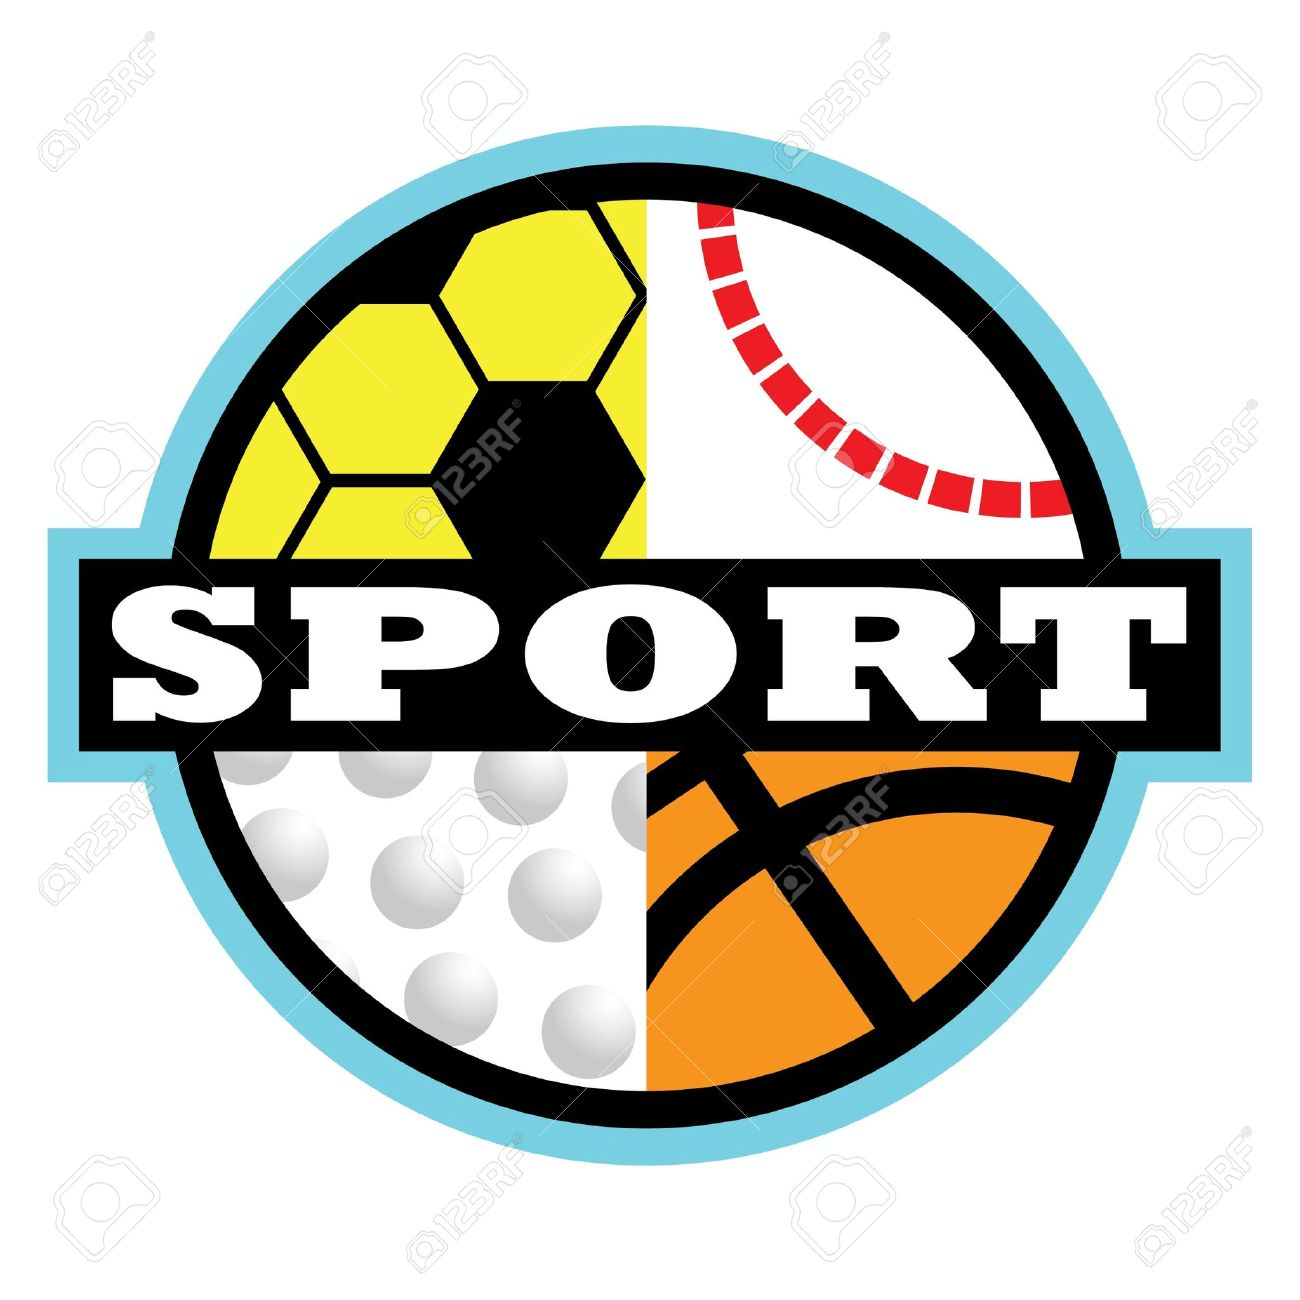 Sports Logo Clipart.